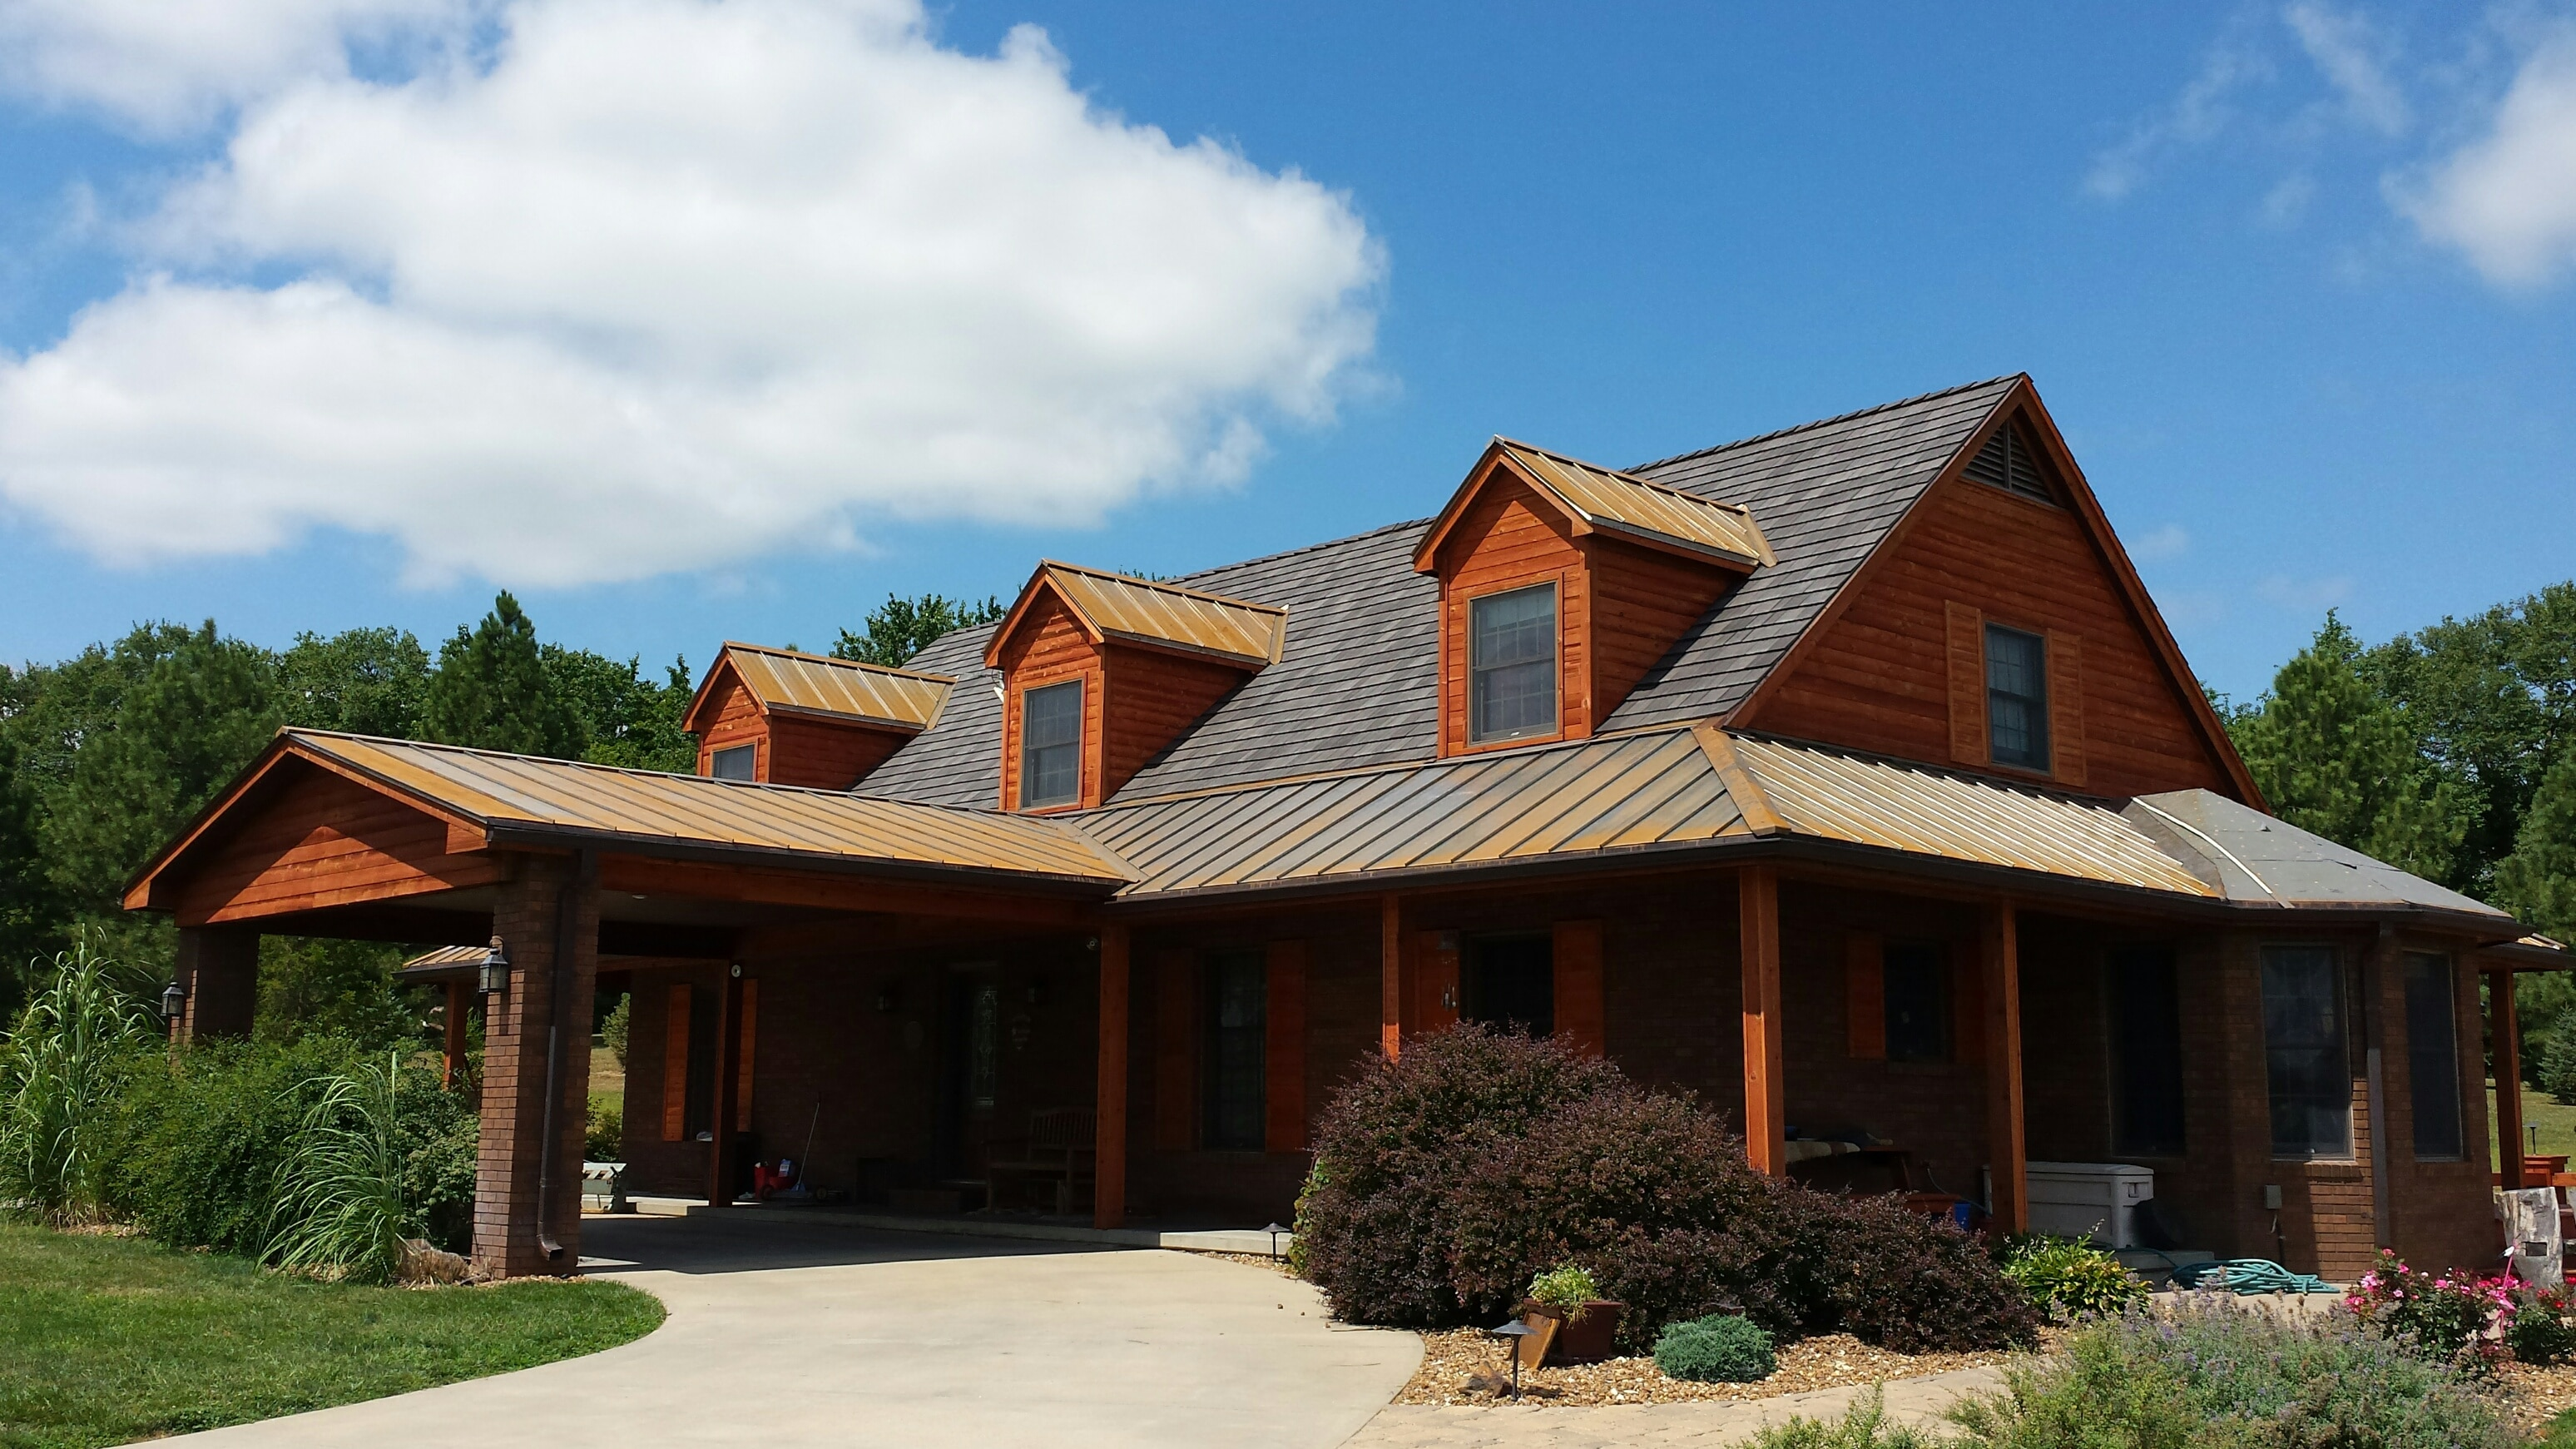 Roof projects residential roofing projects davinci for Polymer roofing shingles